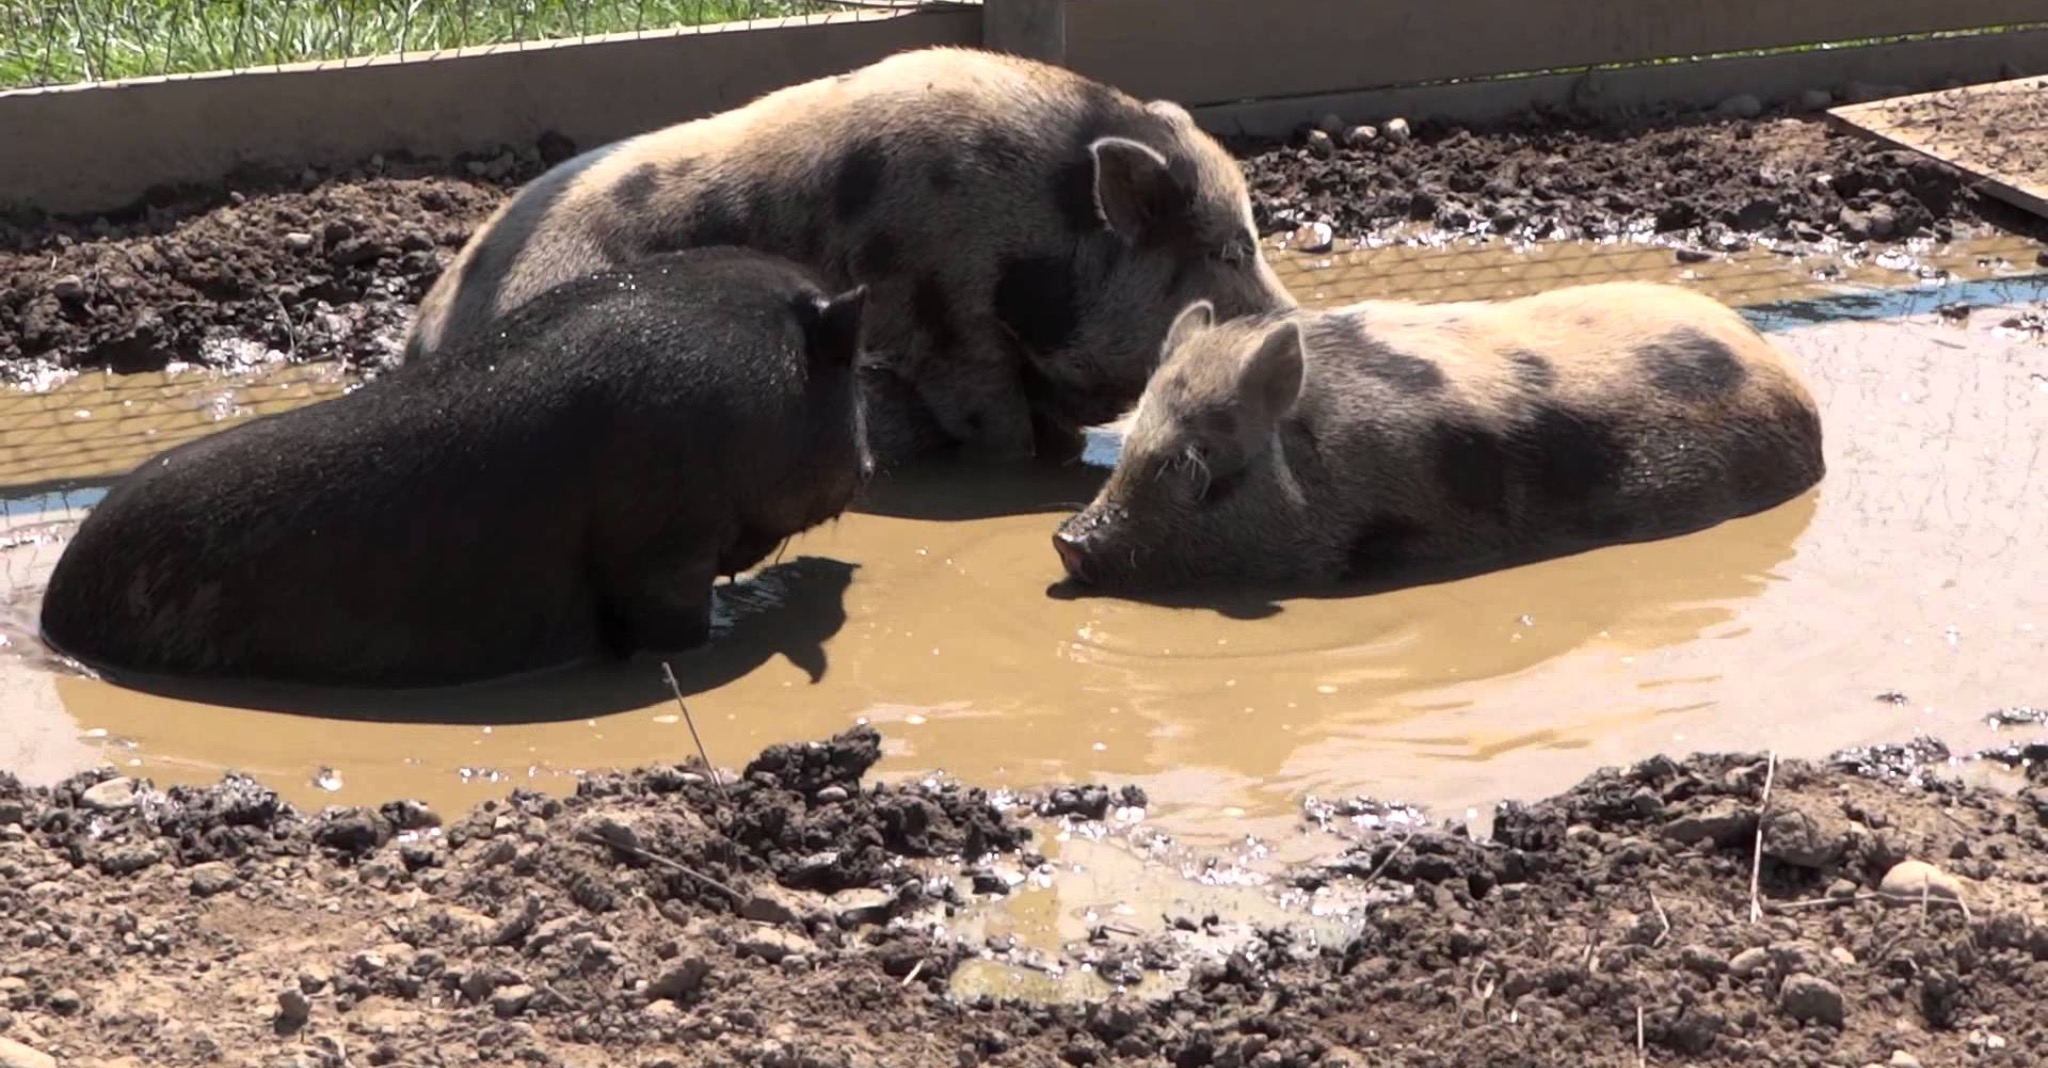 Do pigs really sit in mud all day?